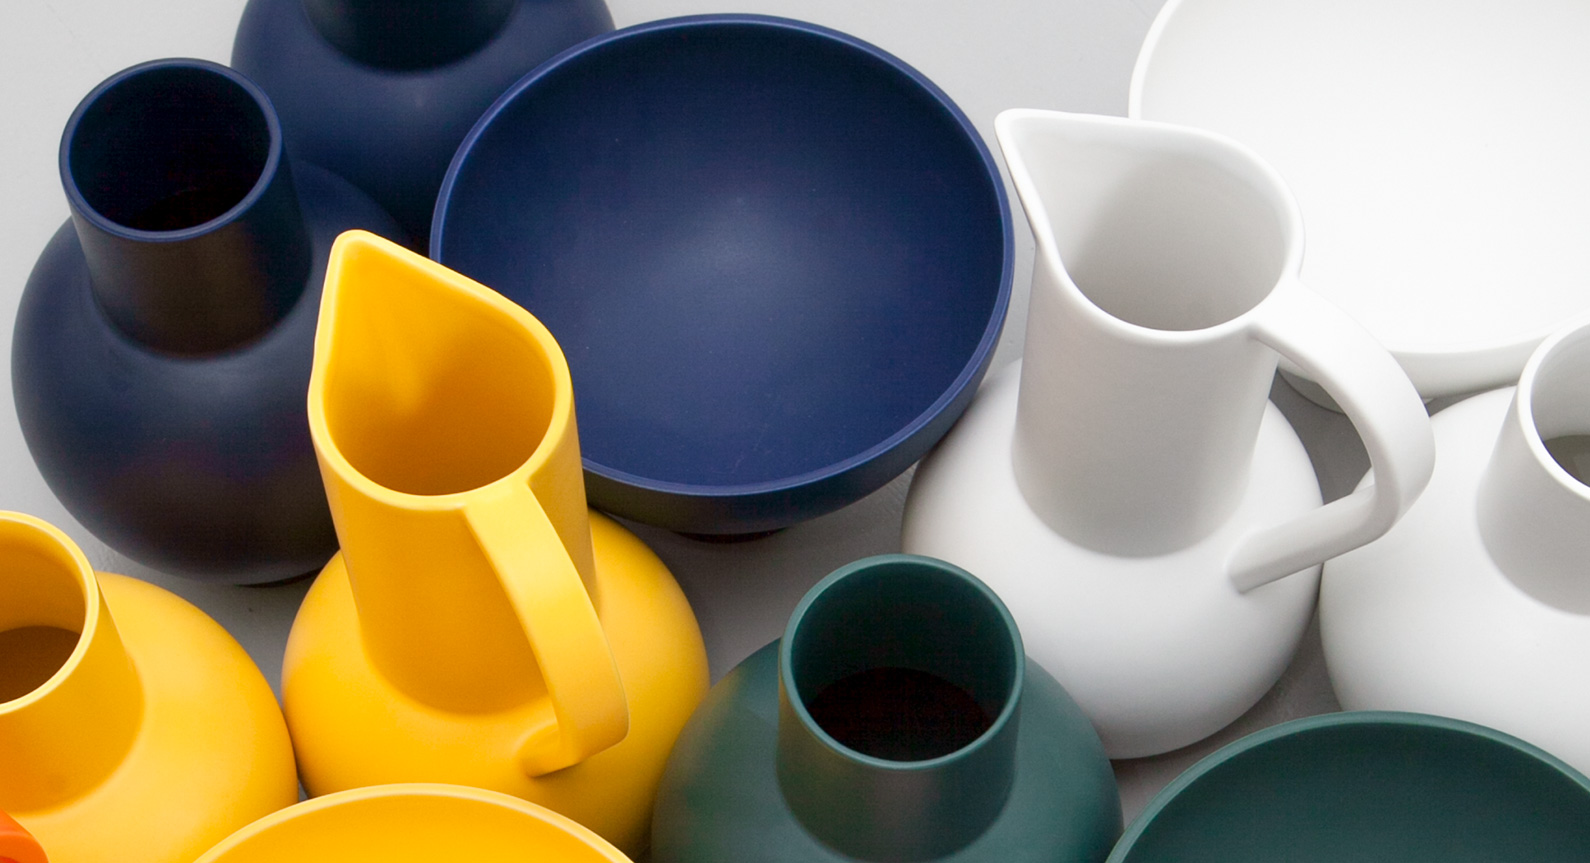 The Next Big Interior Trend: The Colourful Scandinavian Ceramics of Raawii